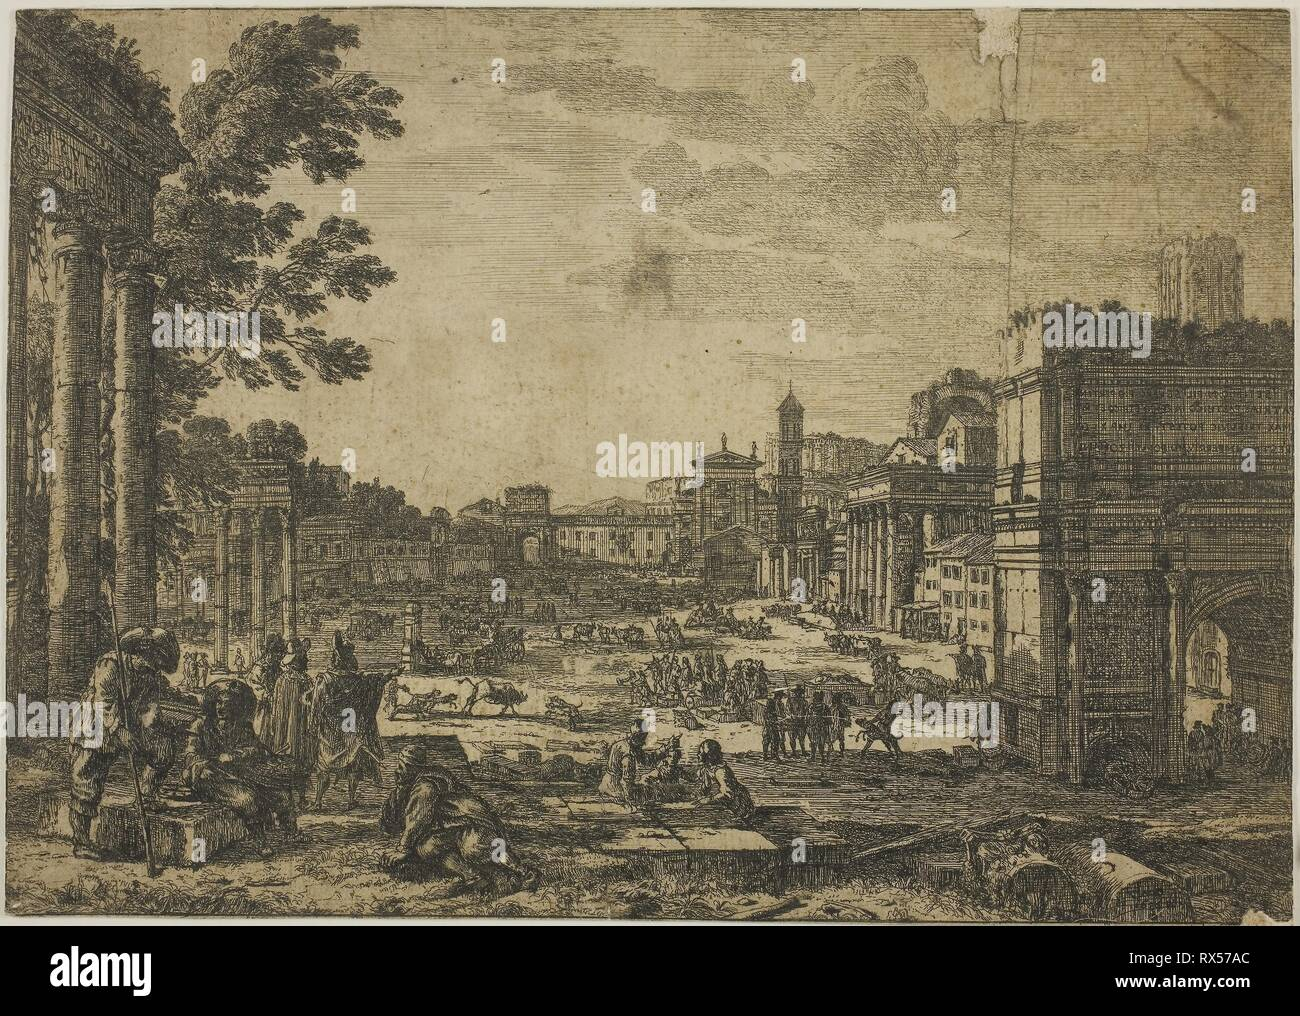 The Roman Forum. Claude Lorrain; French, 1600-1682. Date: 1636. Dimensions: 181 × 256 mm (image/sheet, cut within platemark). Etching on ivory laid paper. Origin: France. Museum: The Chicago Art Institute. - Stock Image